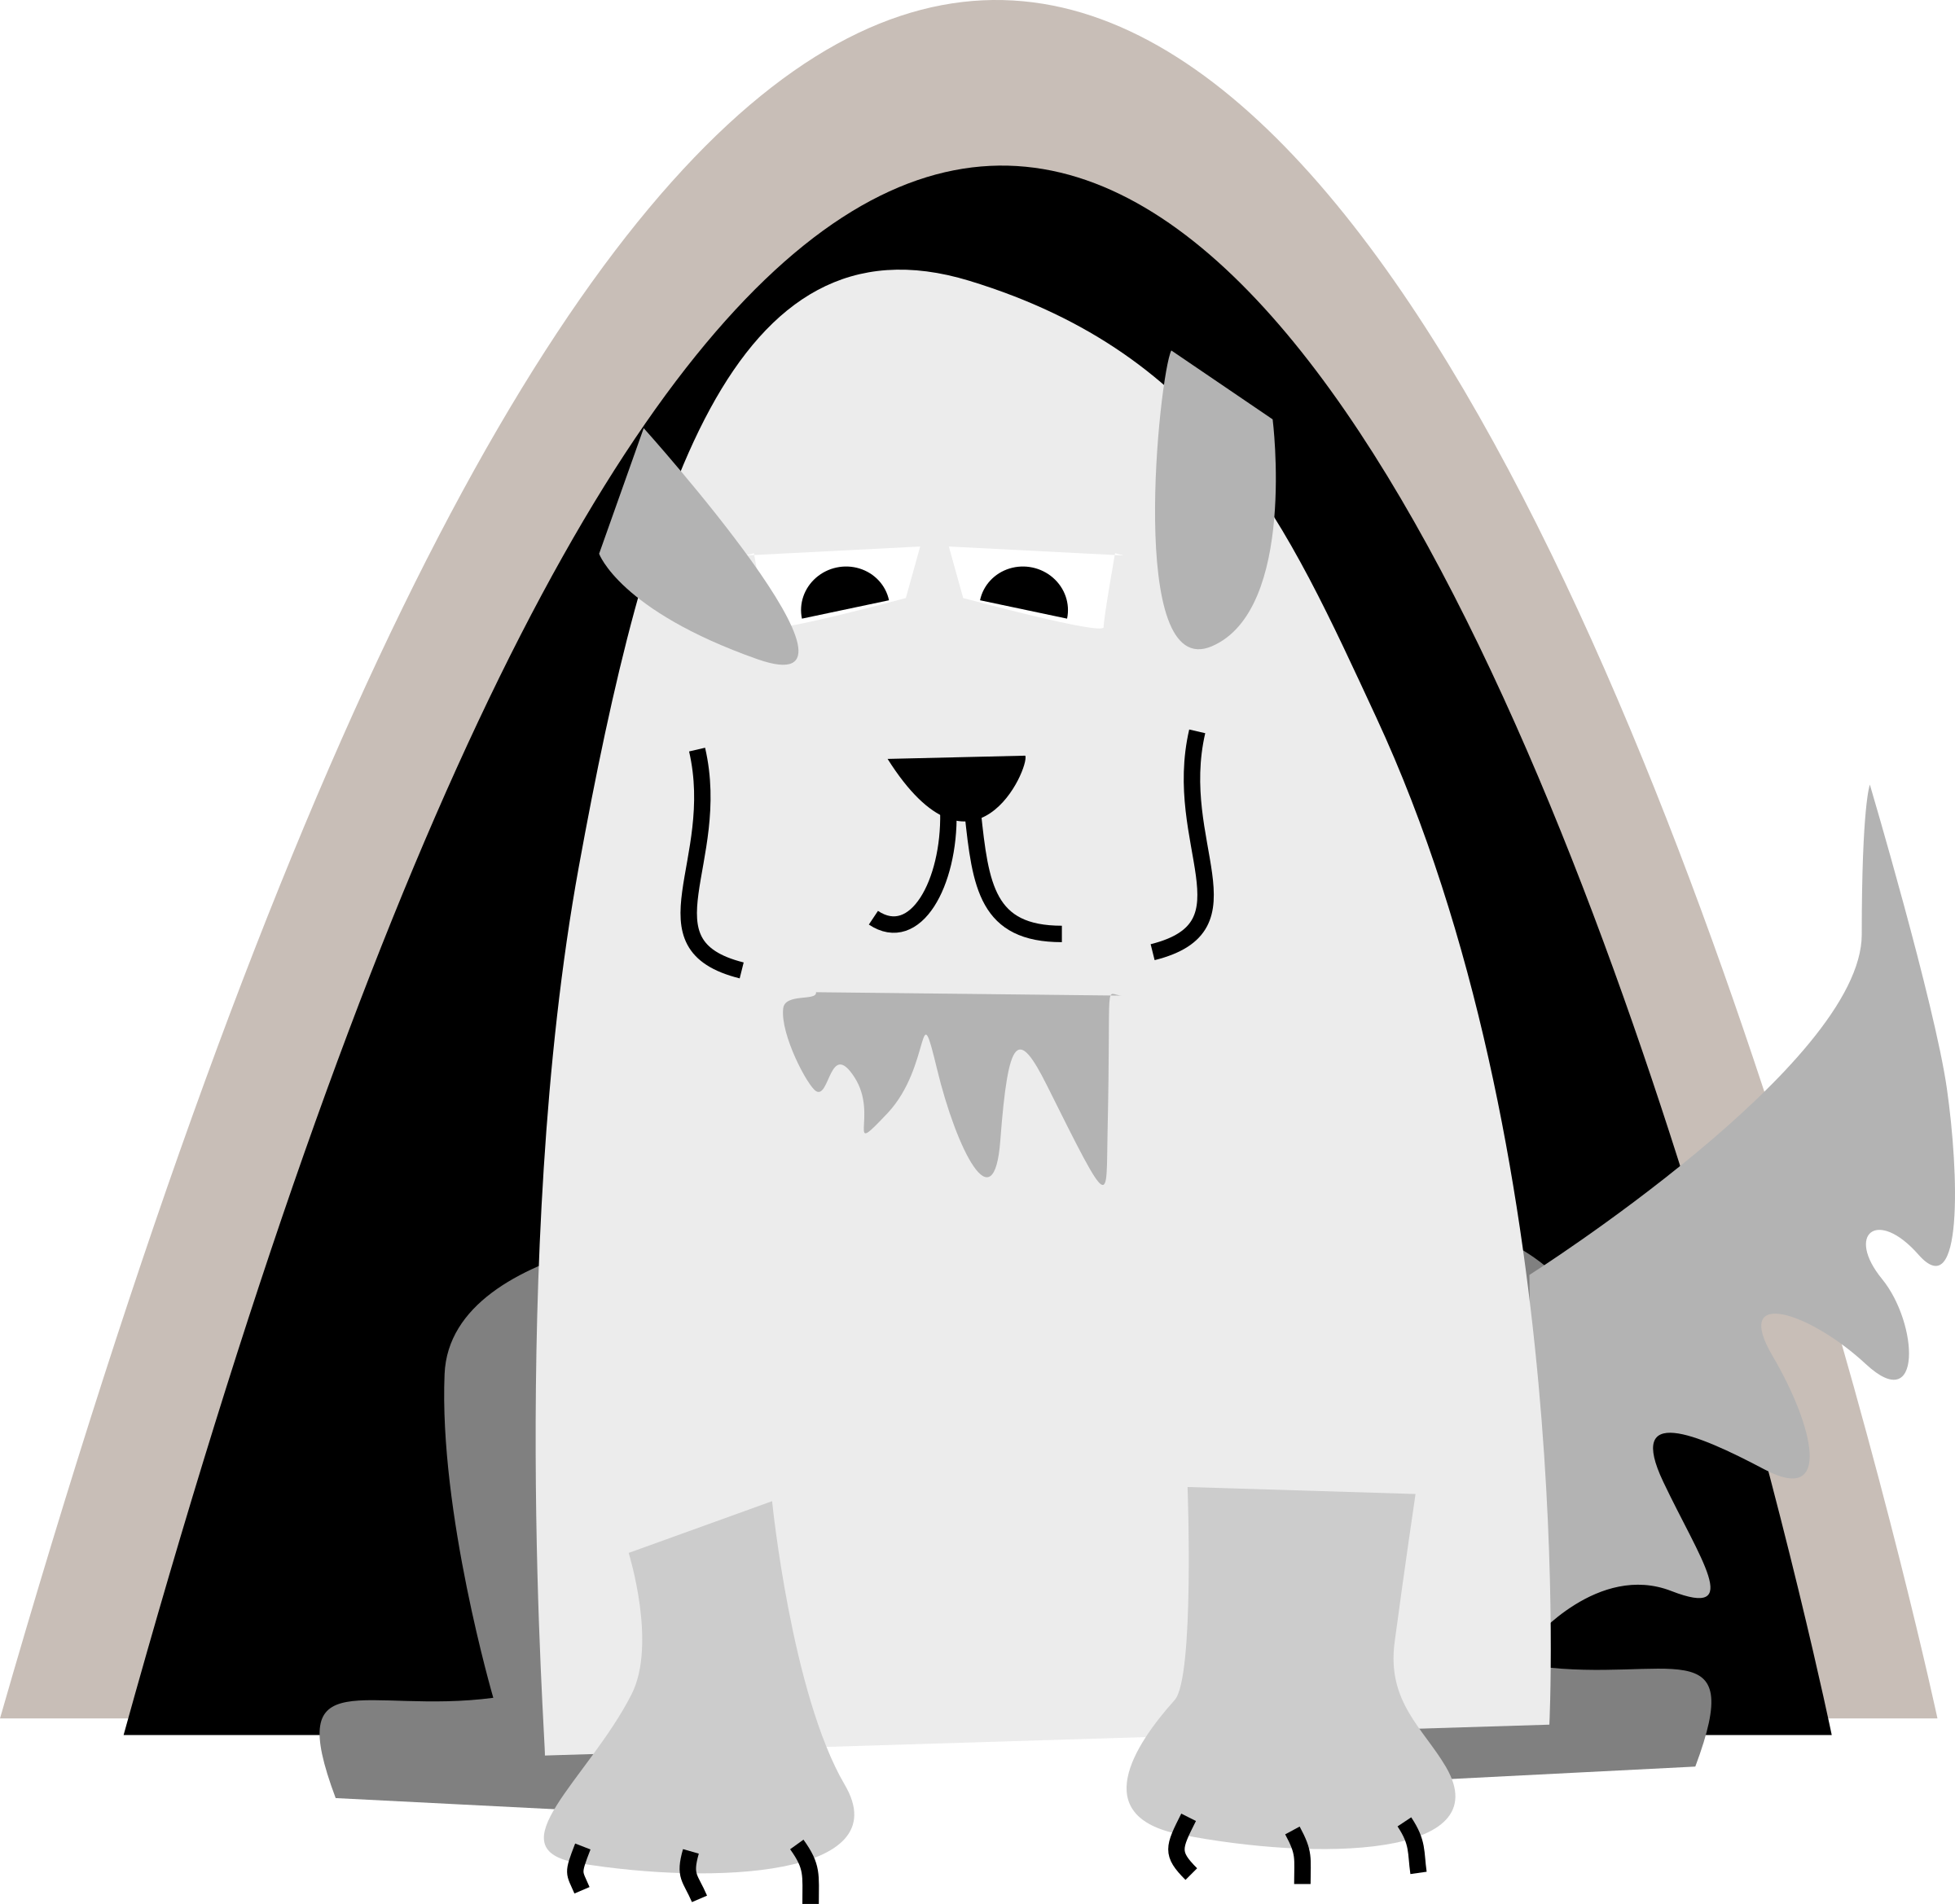 Great pyrenees dog clipart png freeuse download Clipart - Great Pyrenees Dog png freeuse download